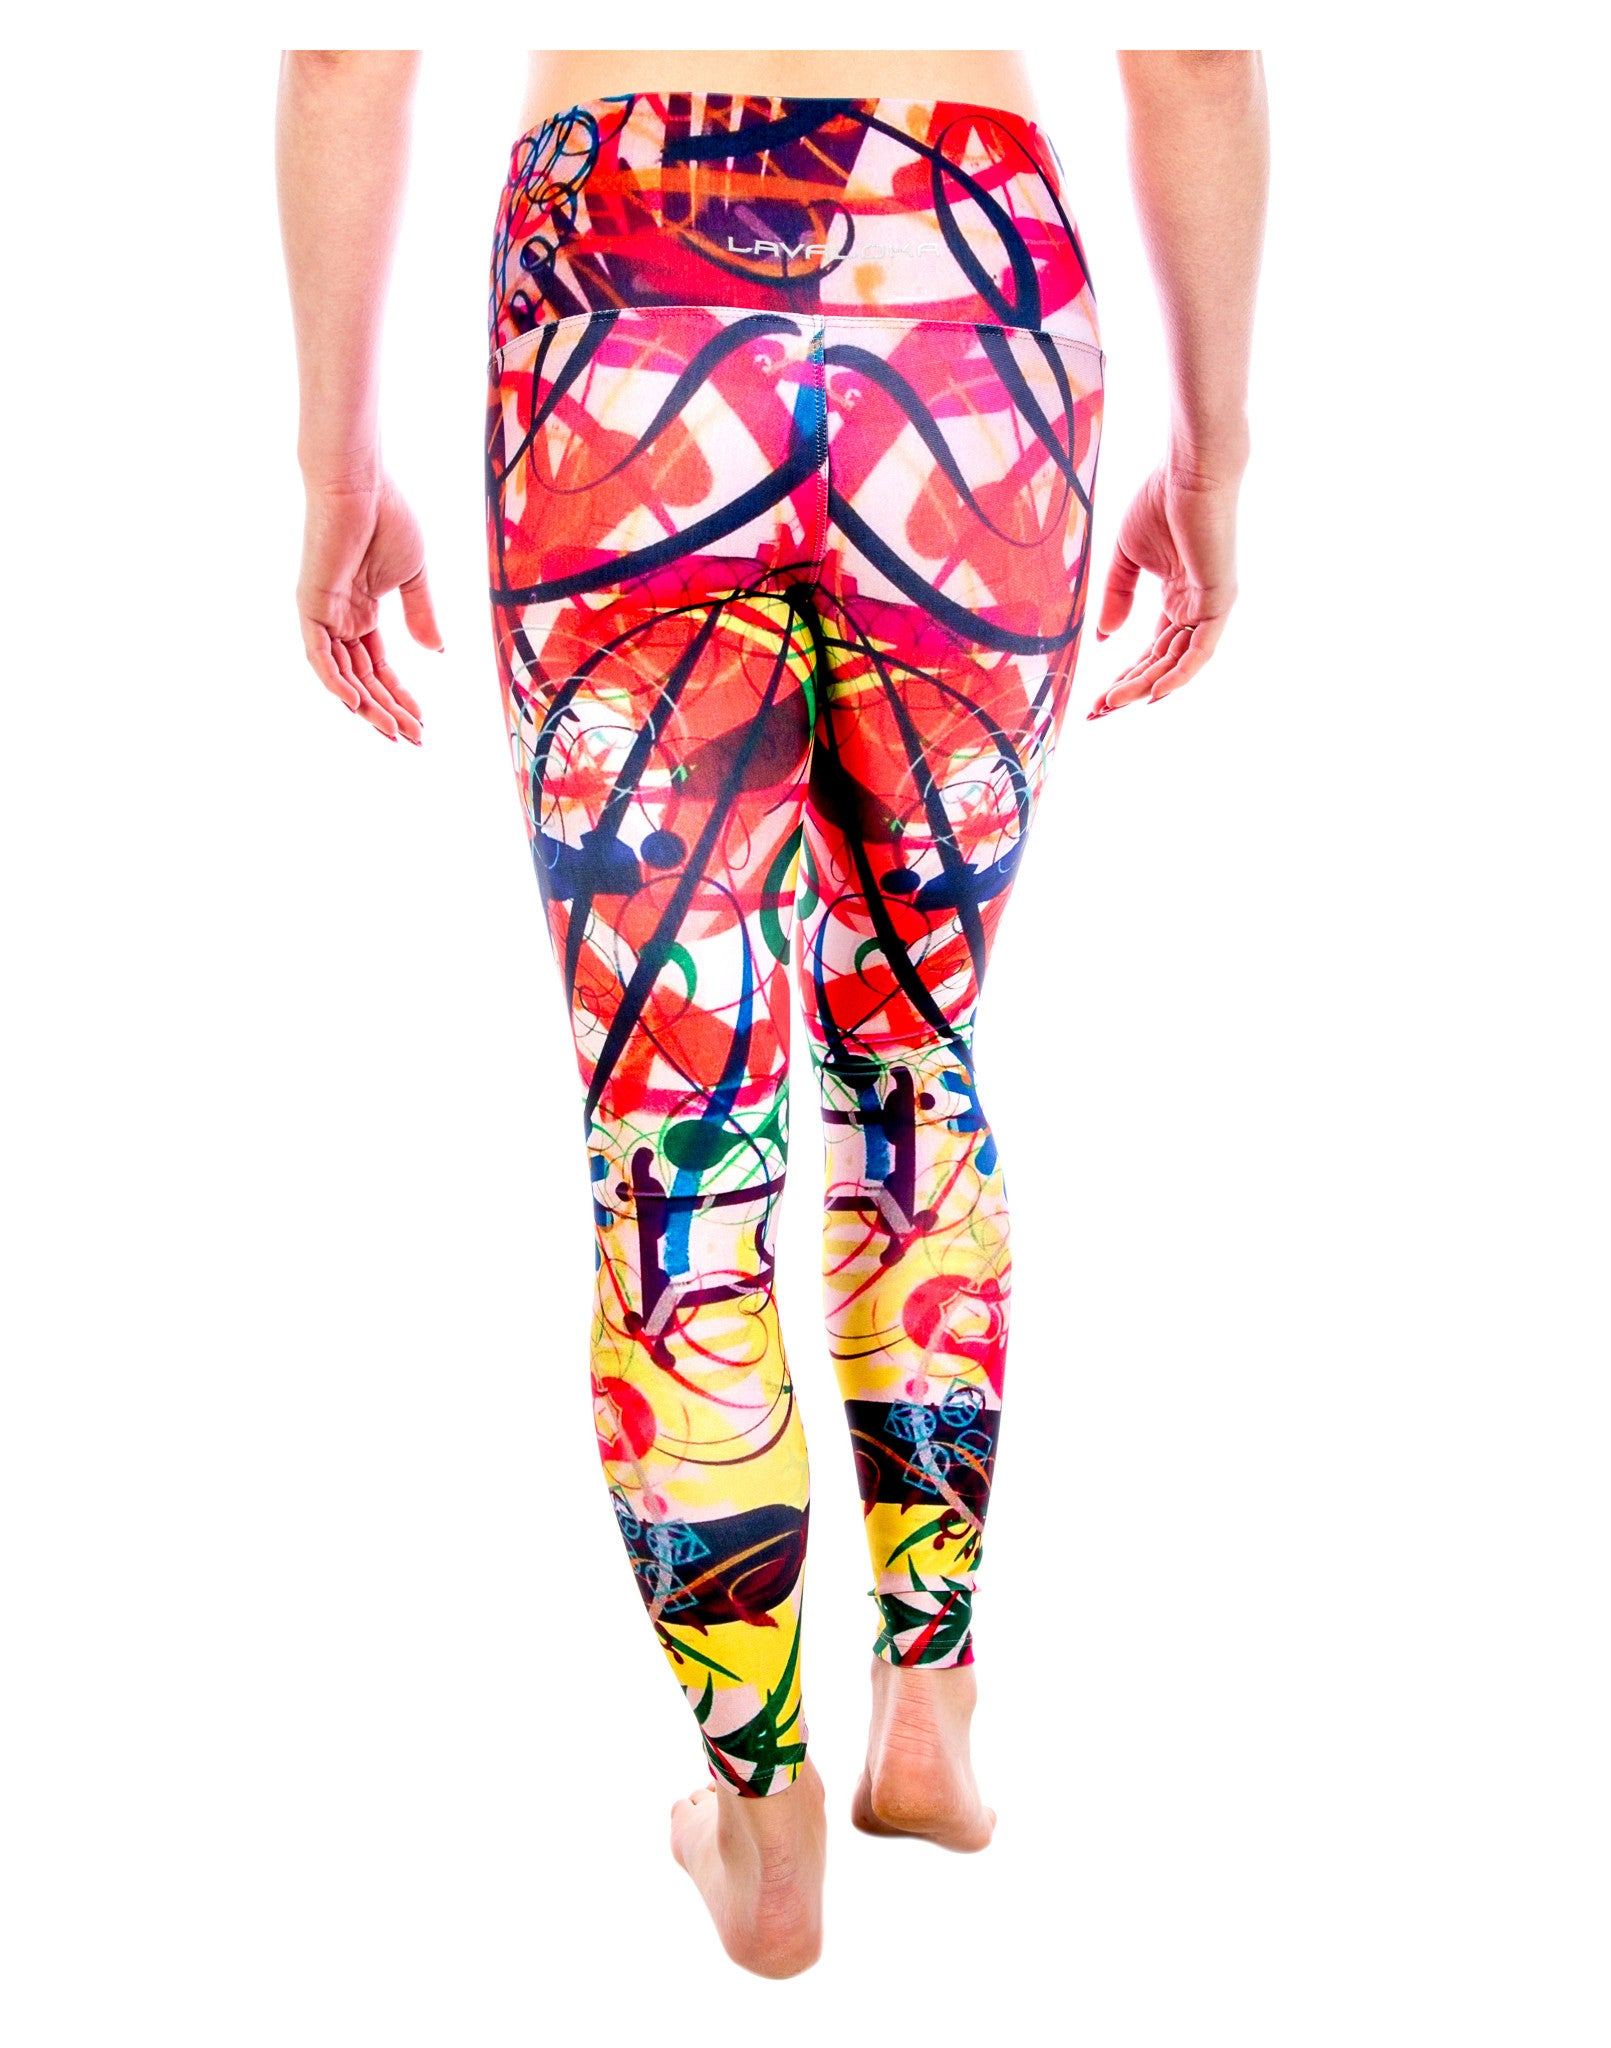 250aa1a196c79 ... Yoga Pants- Doodle Legging from the Color Me Beautiful Yoga Pants  Collection by LavaLoka